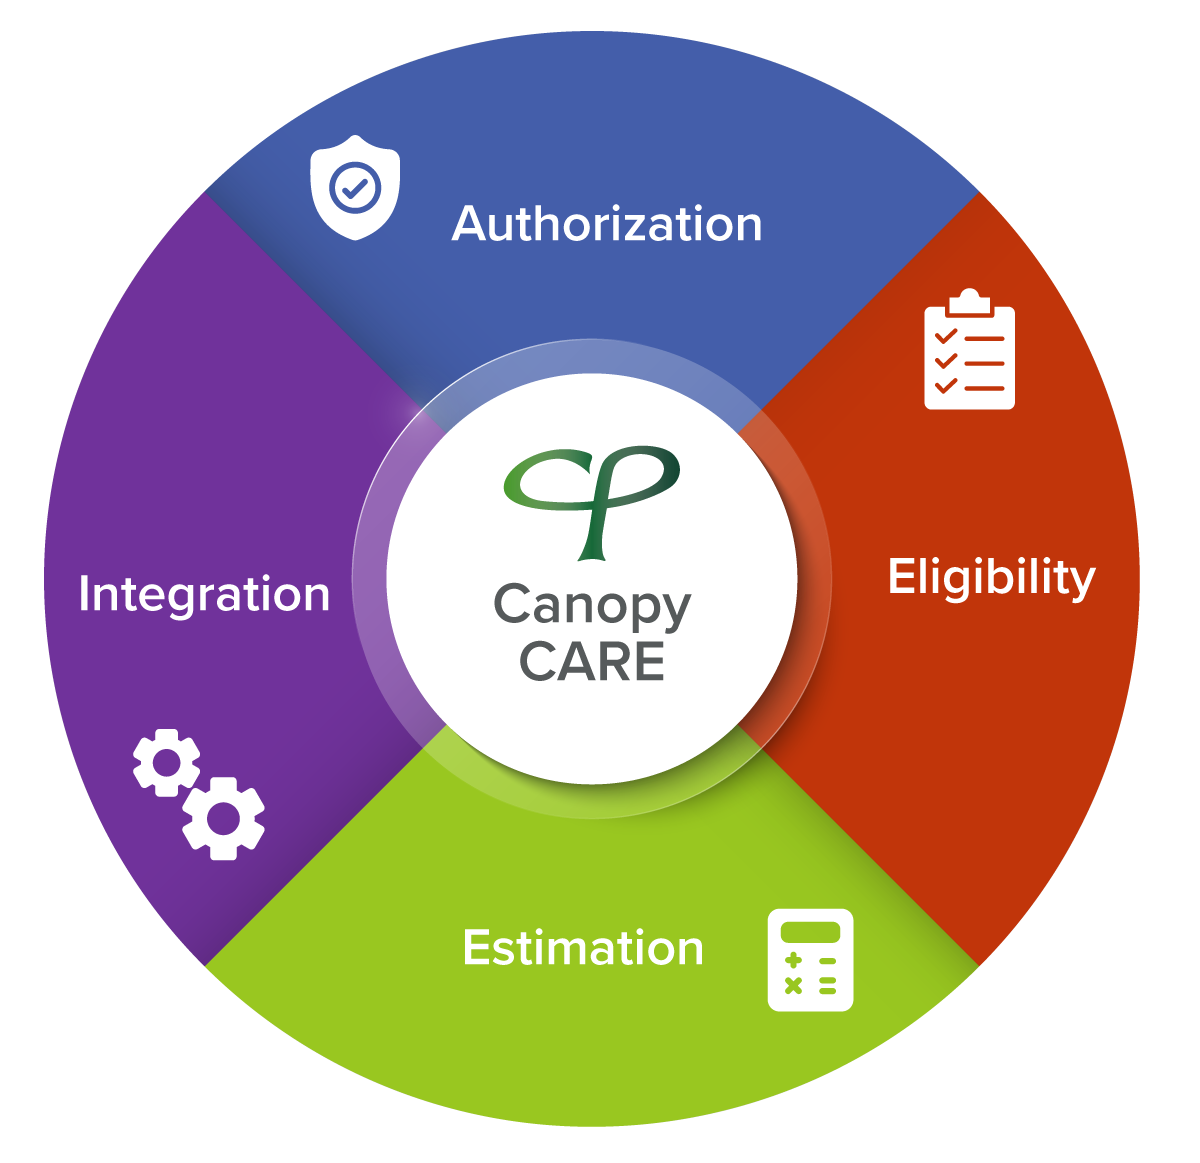 Canopy CARE